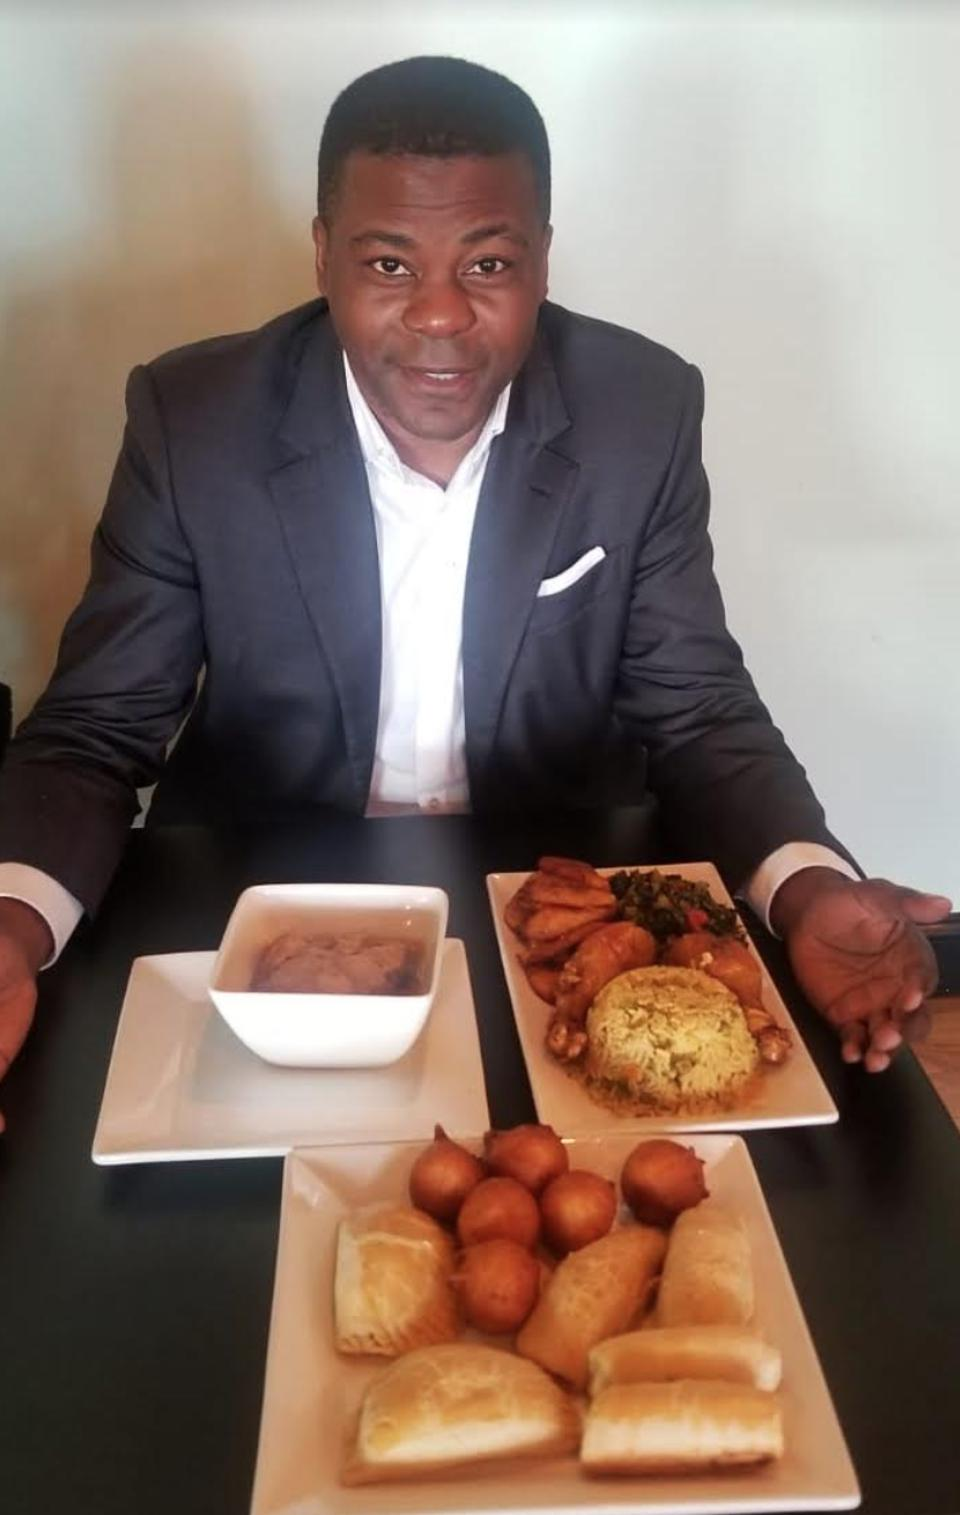 Philippe King with food from his roots.